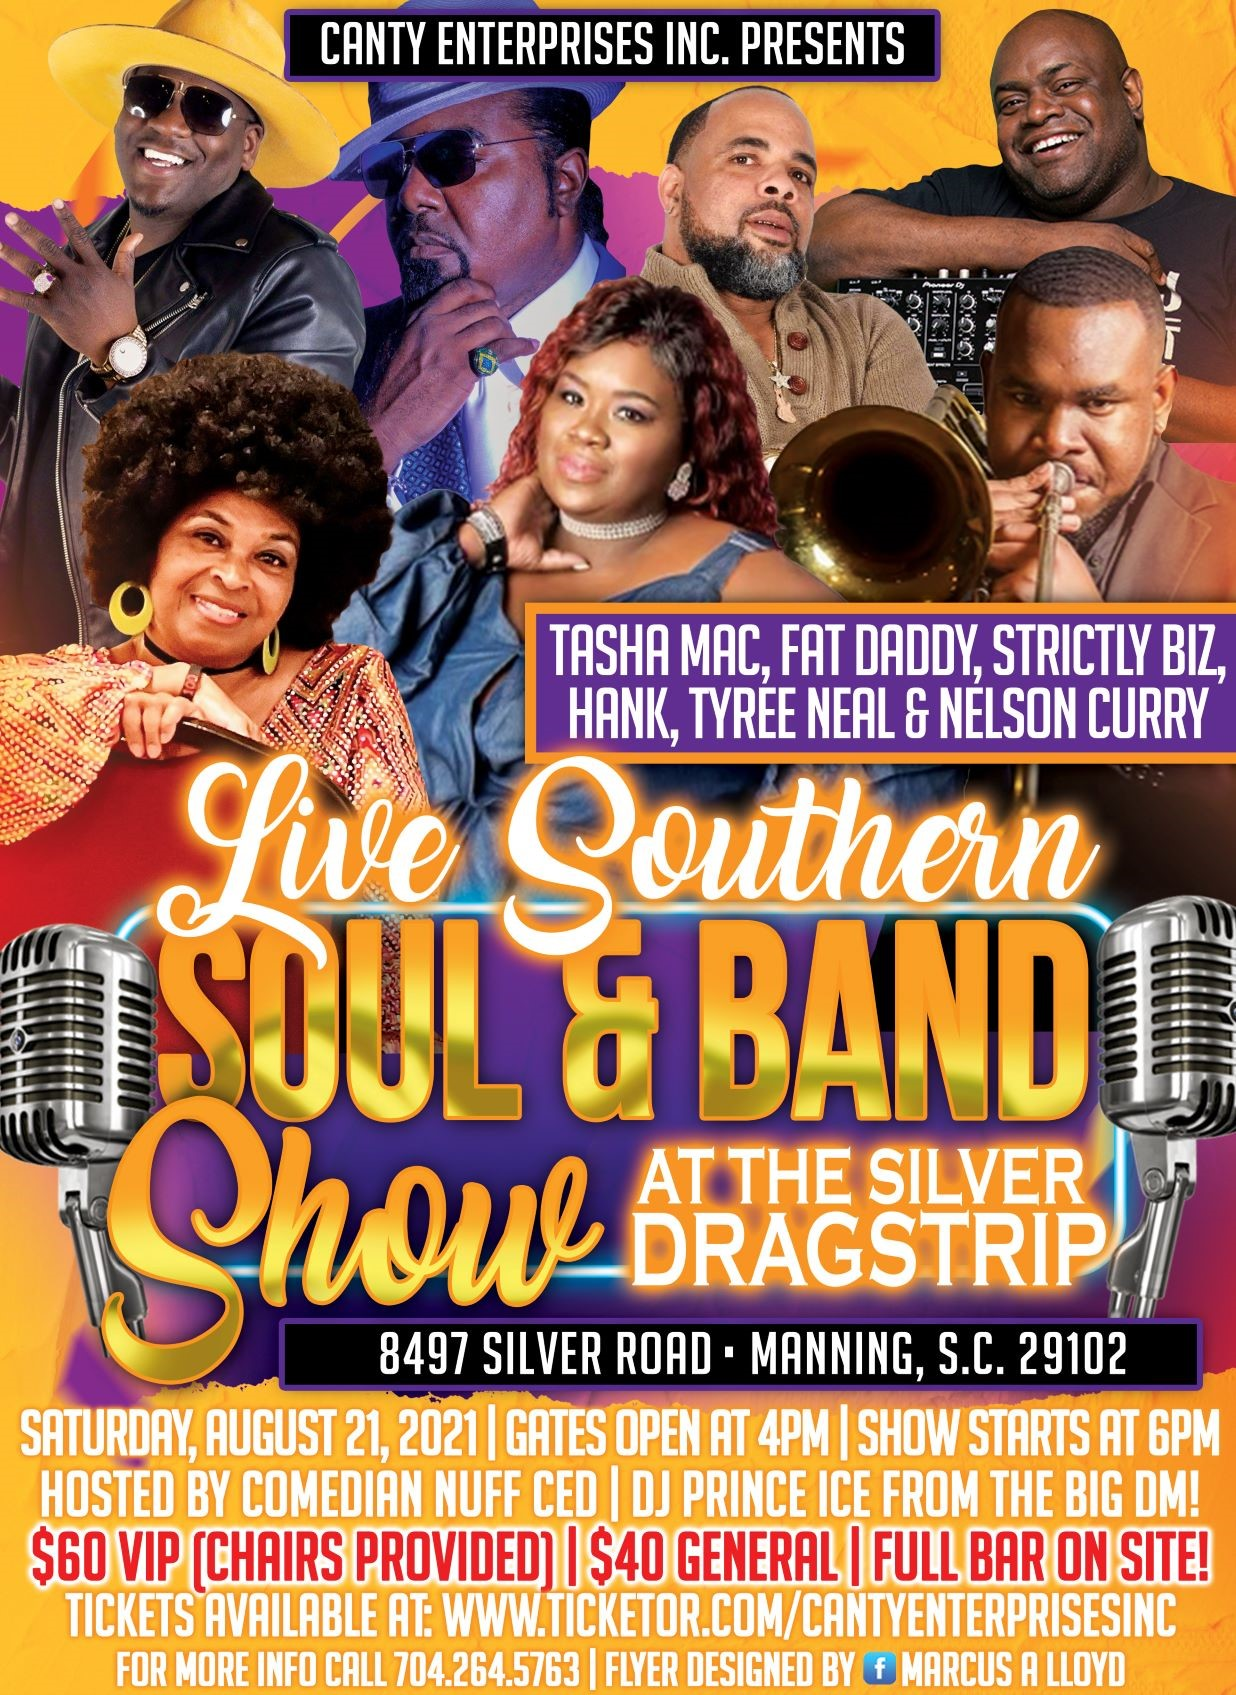 Live Southern Soul & Band Show  on Aug 21, 18:00@Silver Dragstrip - Buy tickets and Get information on Canty Enterprises Inc